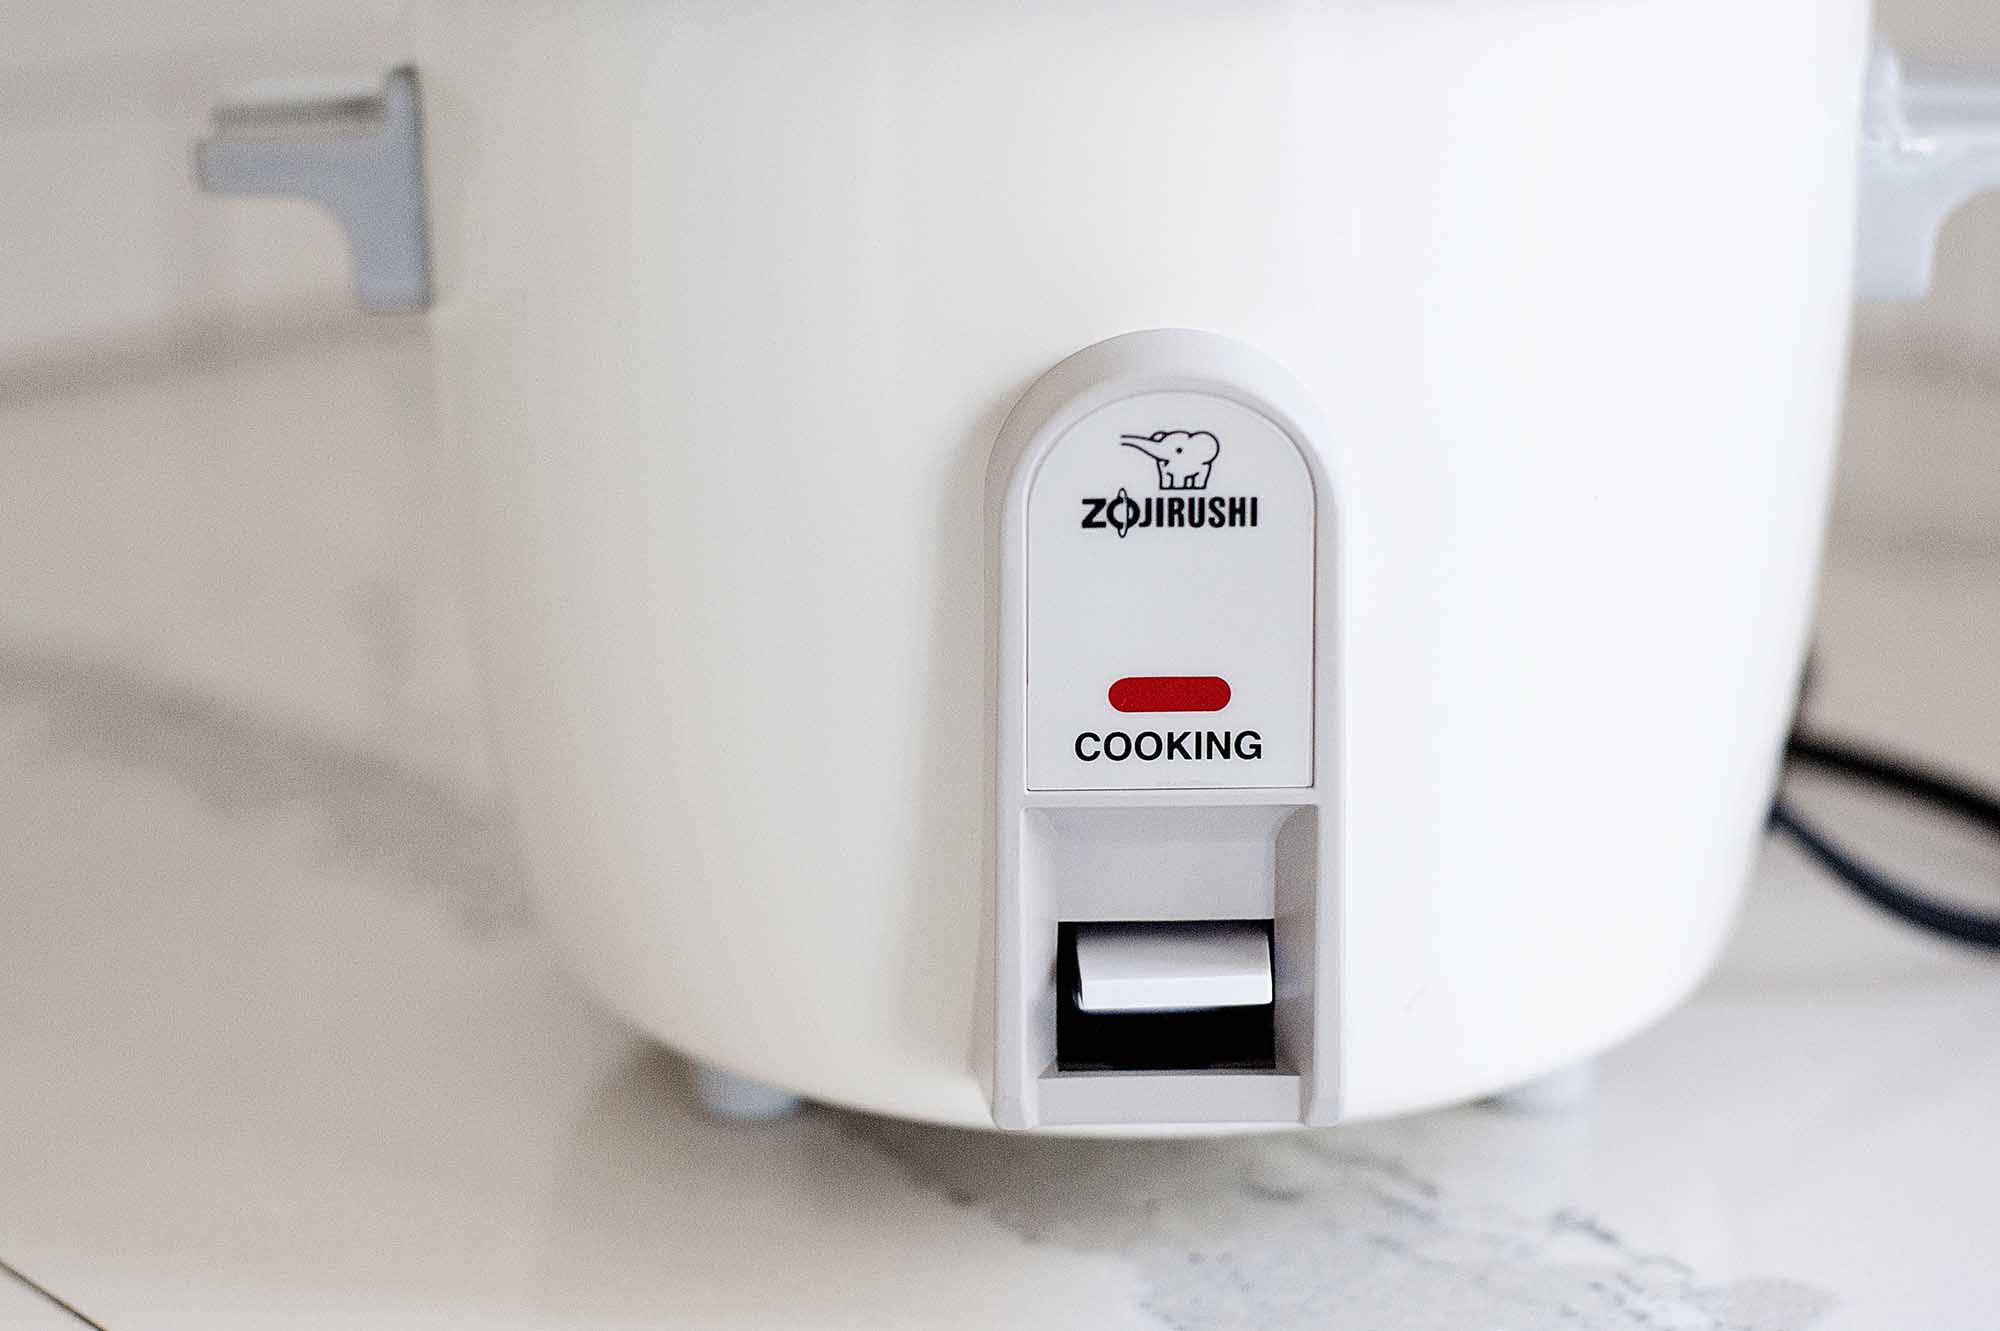 Horizontal image of a side view of the bottom half of a Zojirushi rice cooker on a white countertop.